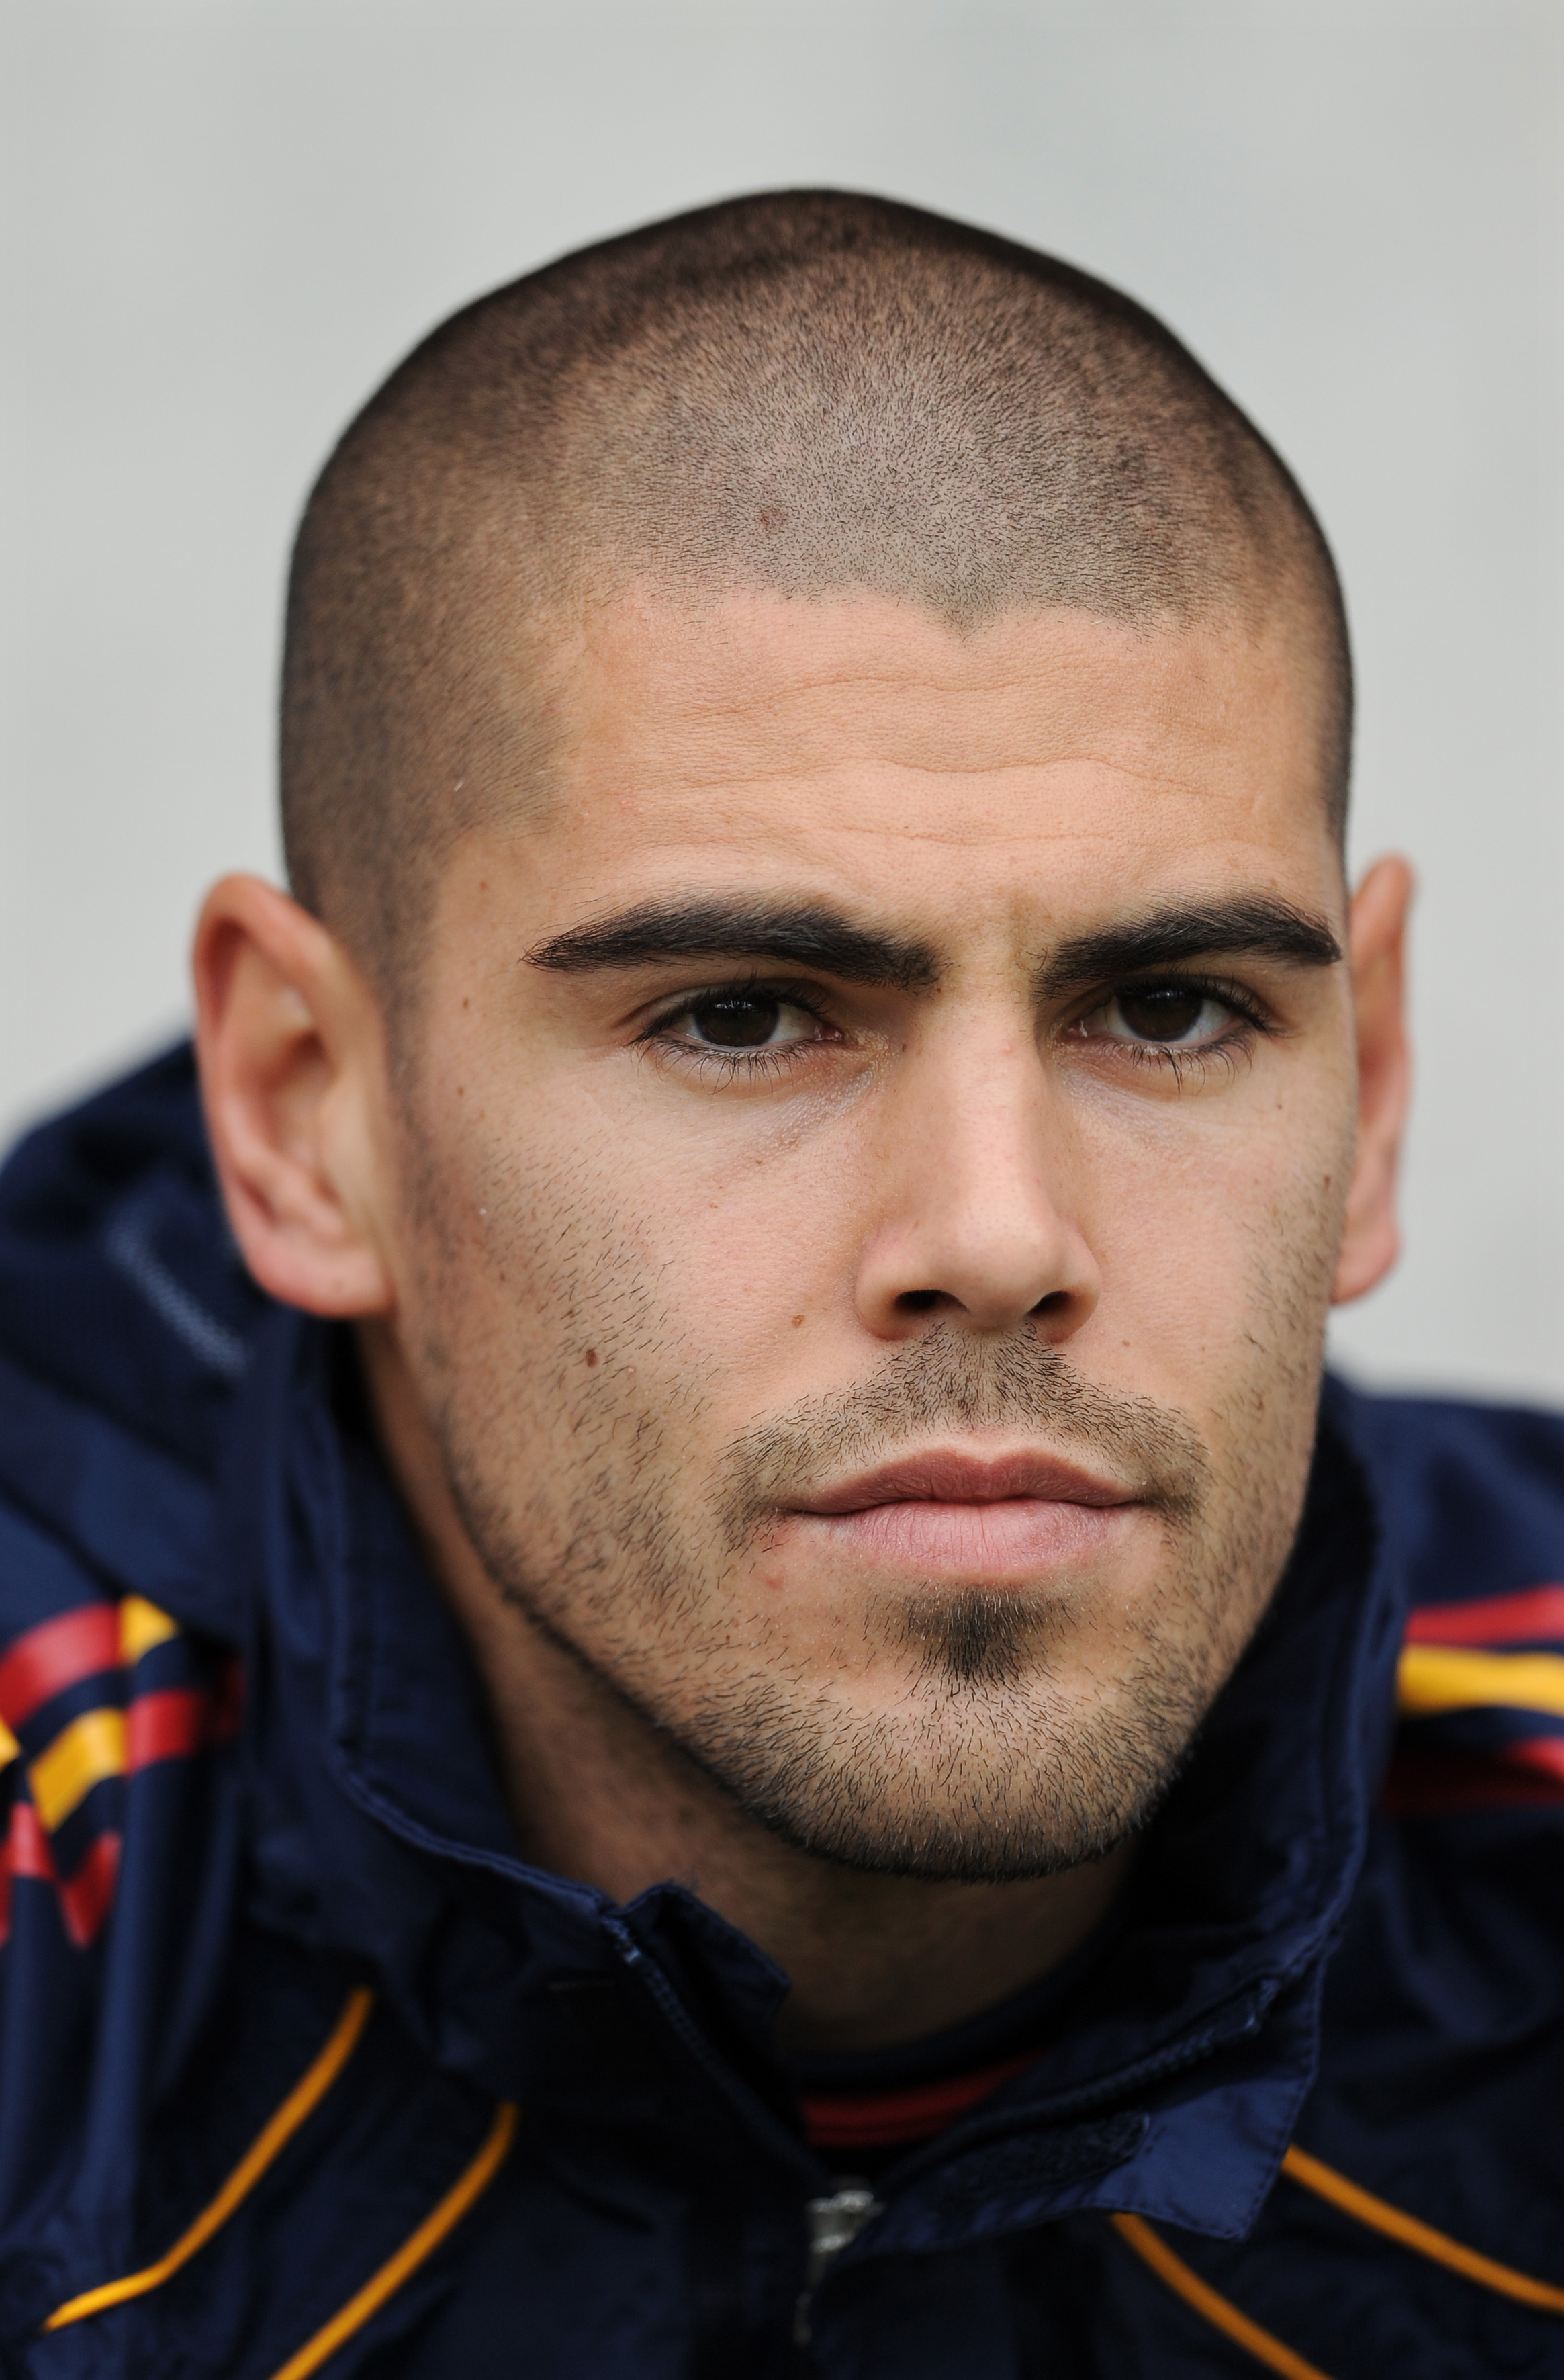 VICTOR VALDES photo, pics, wallpaper - photo #453641